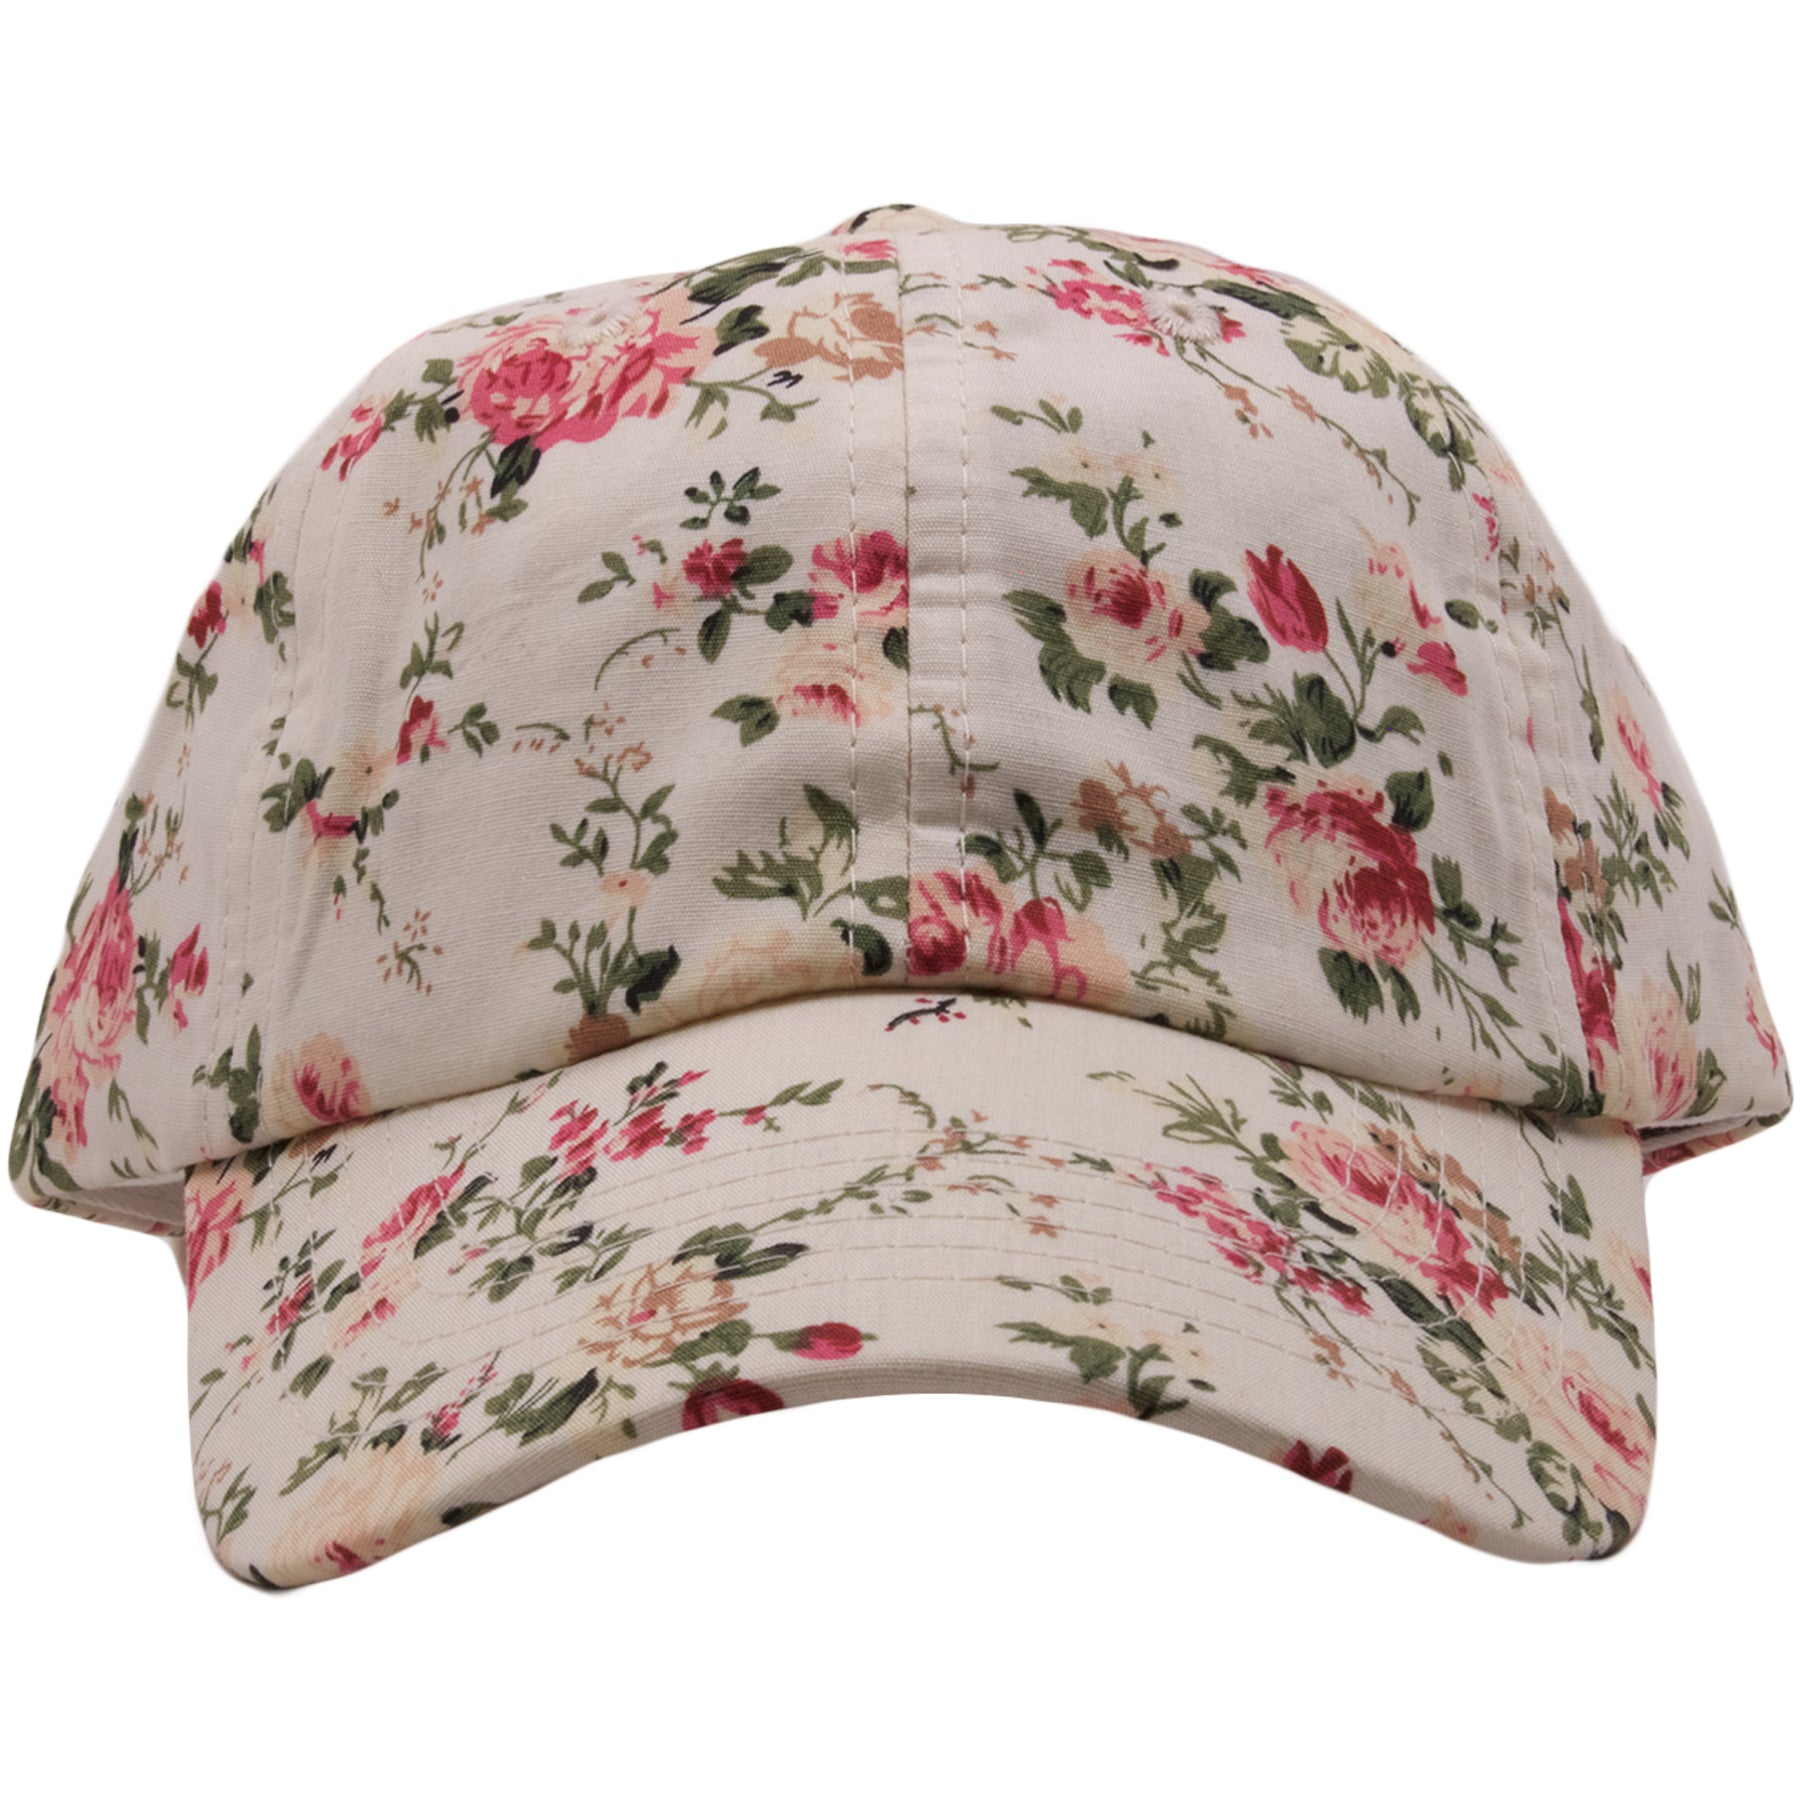 b11871a93f78a The off white floral blank adjustable ball cap is off white and features  pink flower with